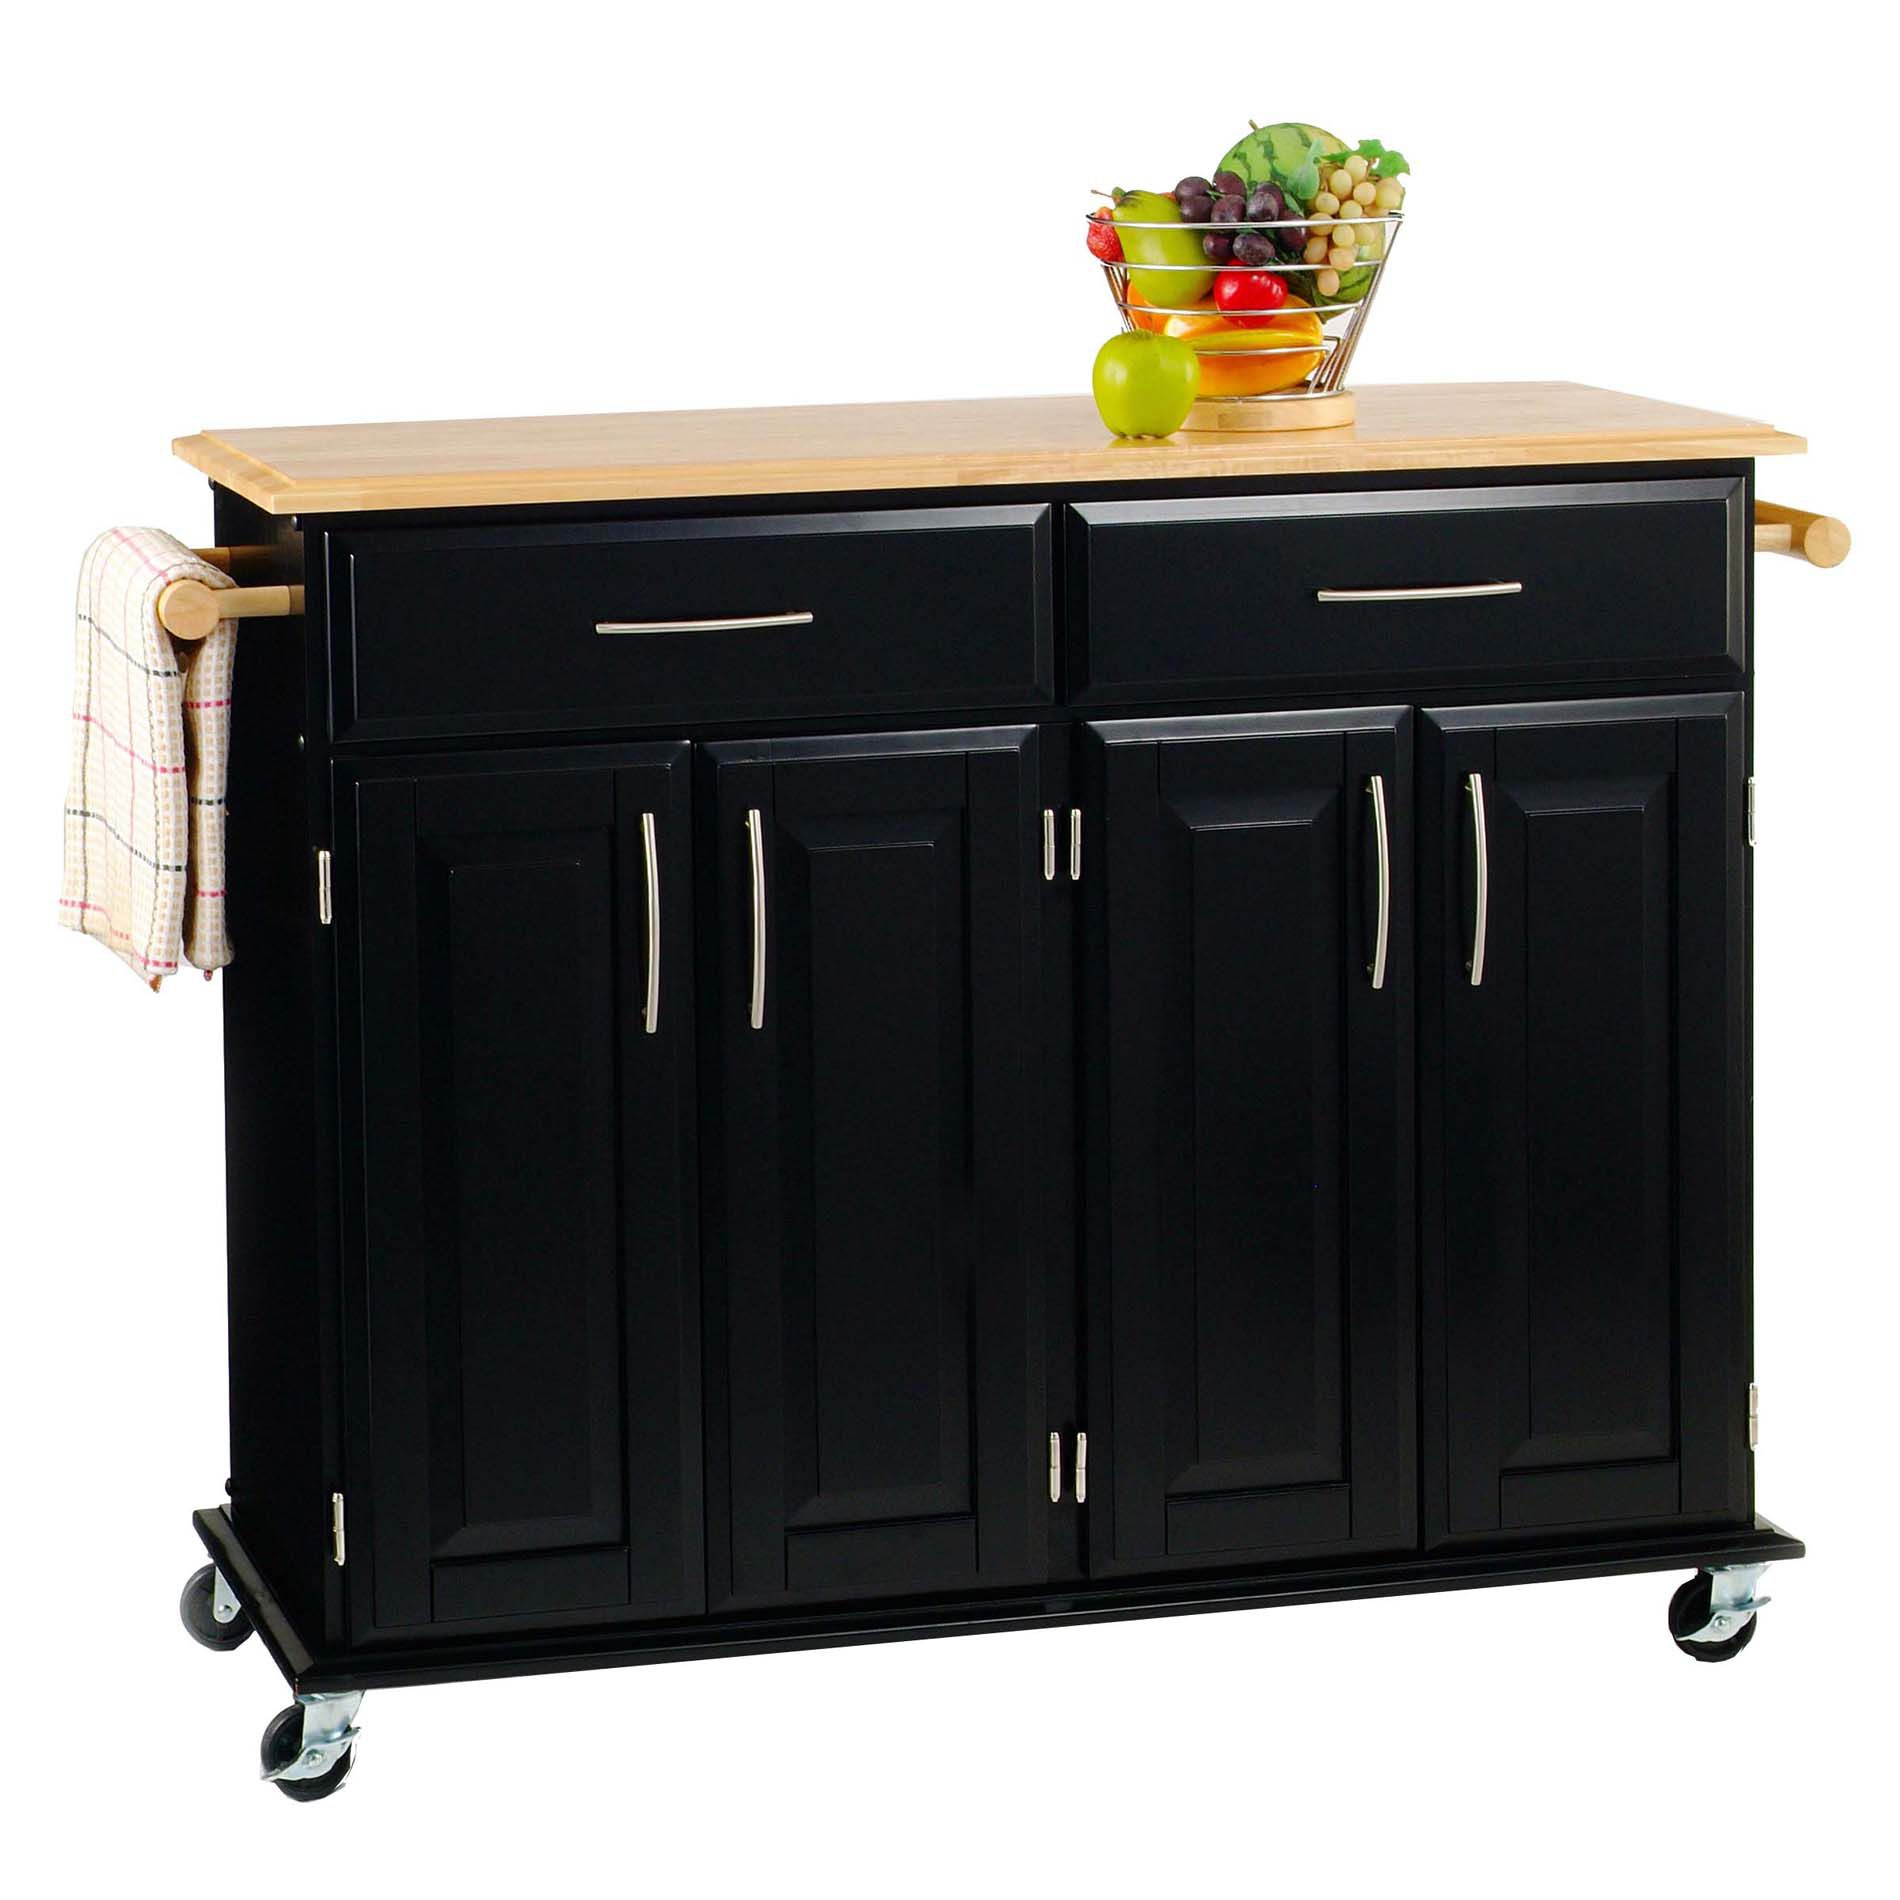 unfinished kitchen cart granite tables 3512h x 4814w 1814d solid wood top island